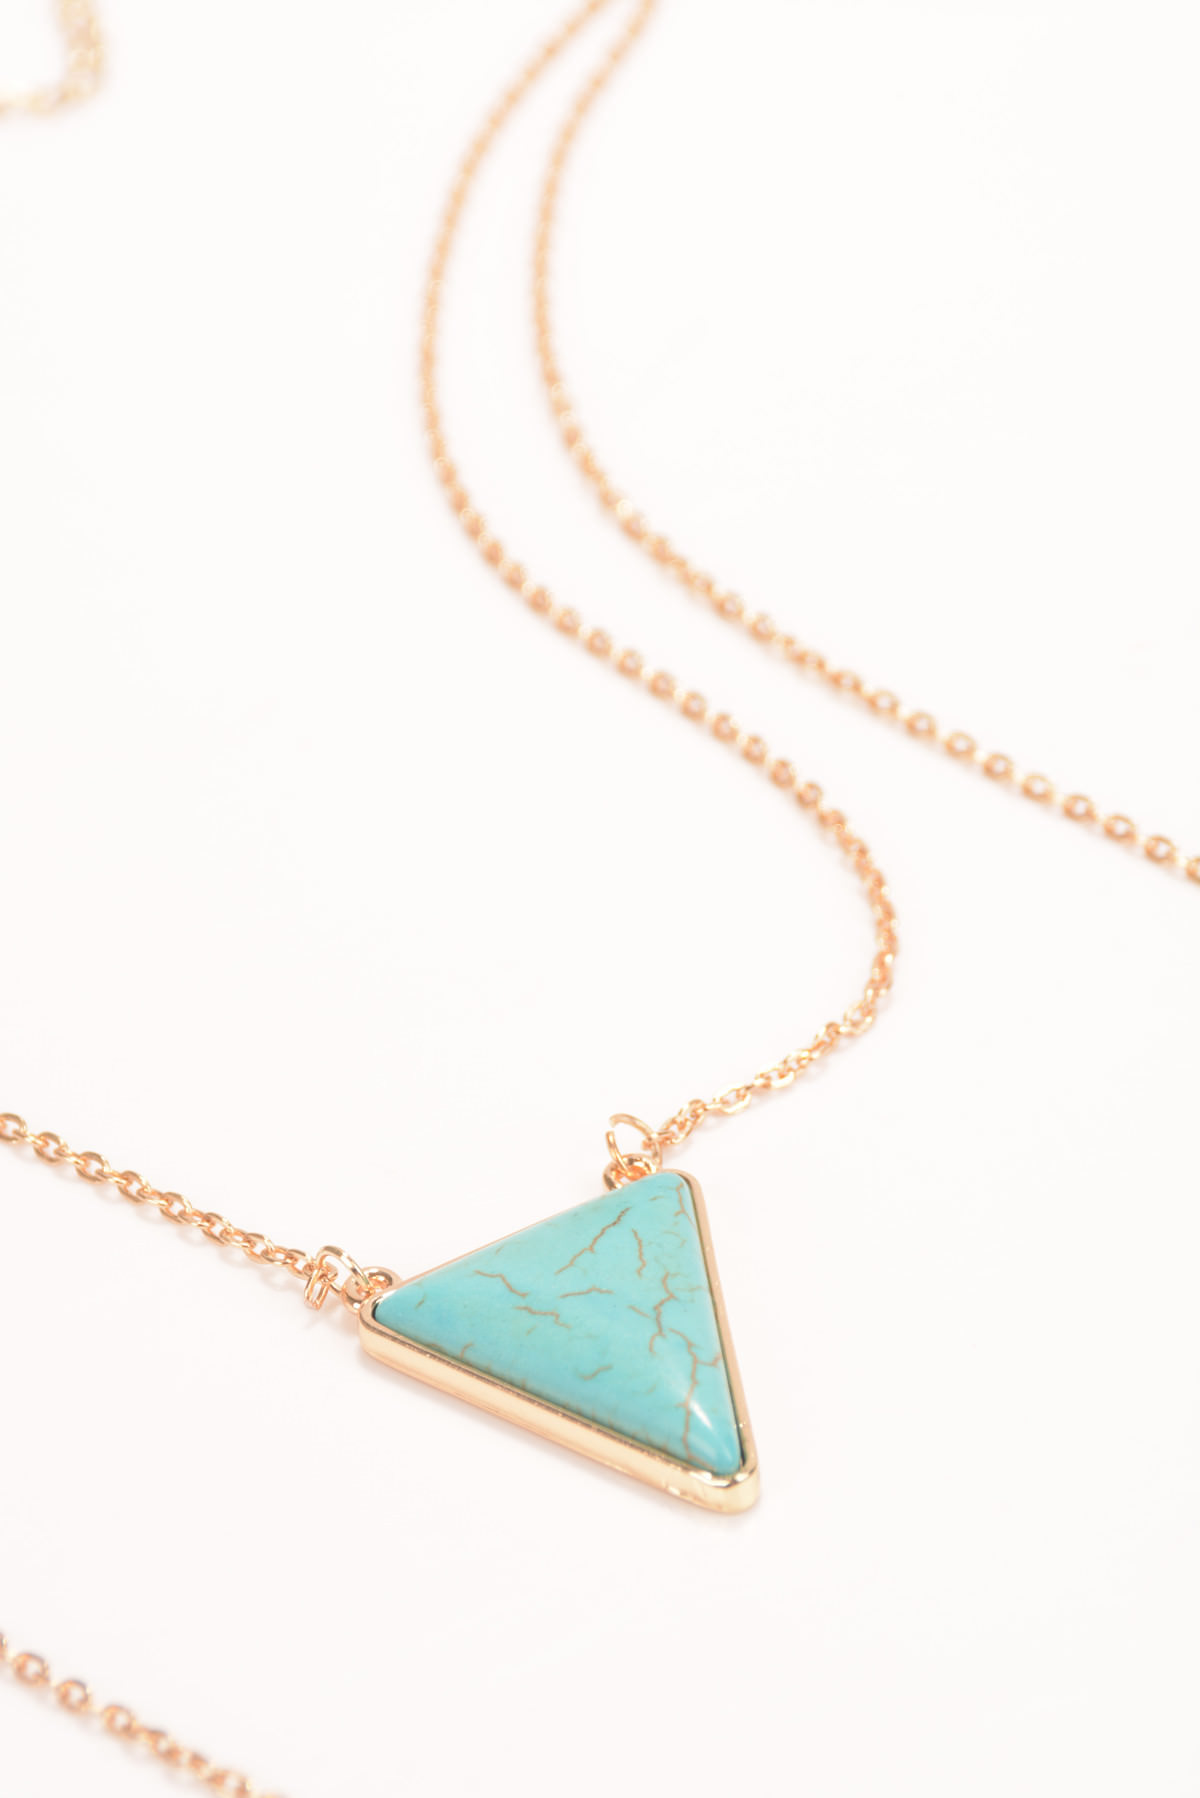 1960-282ceab25fc9342e8f90439078db6c59 Captivating Body Chain Necklace With Bijoux Triangle Turquoise Stone